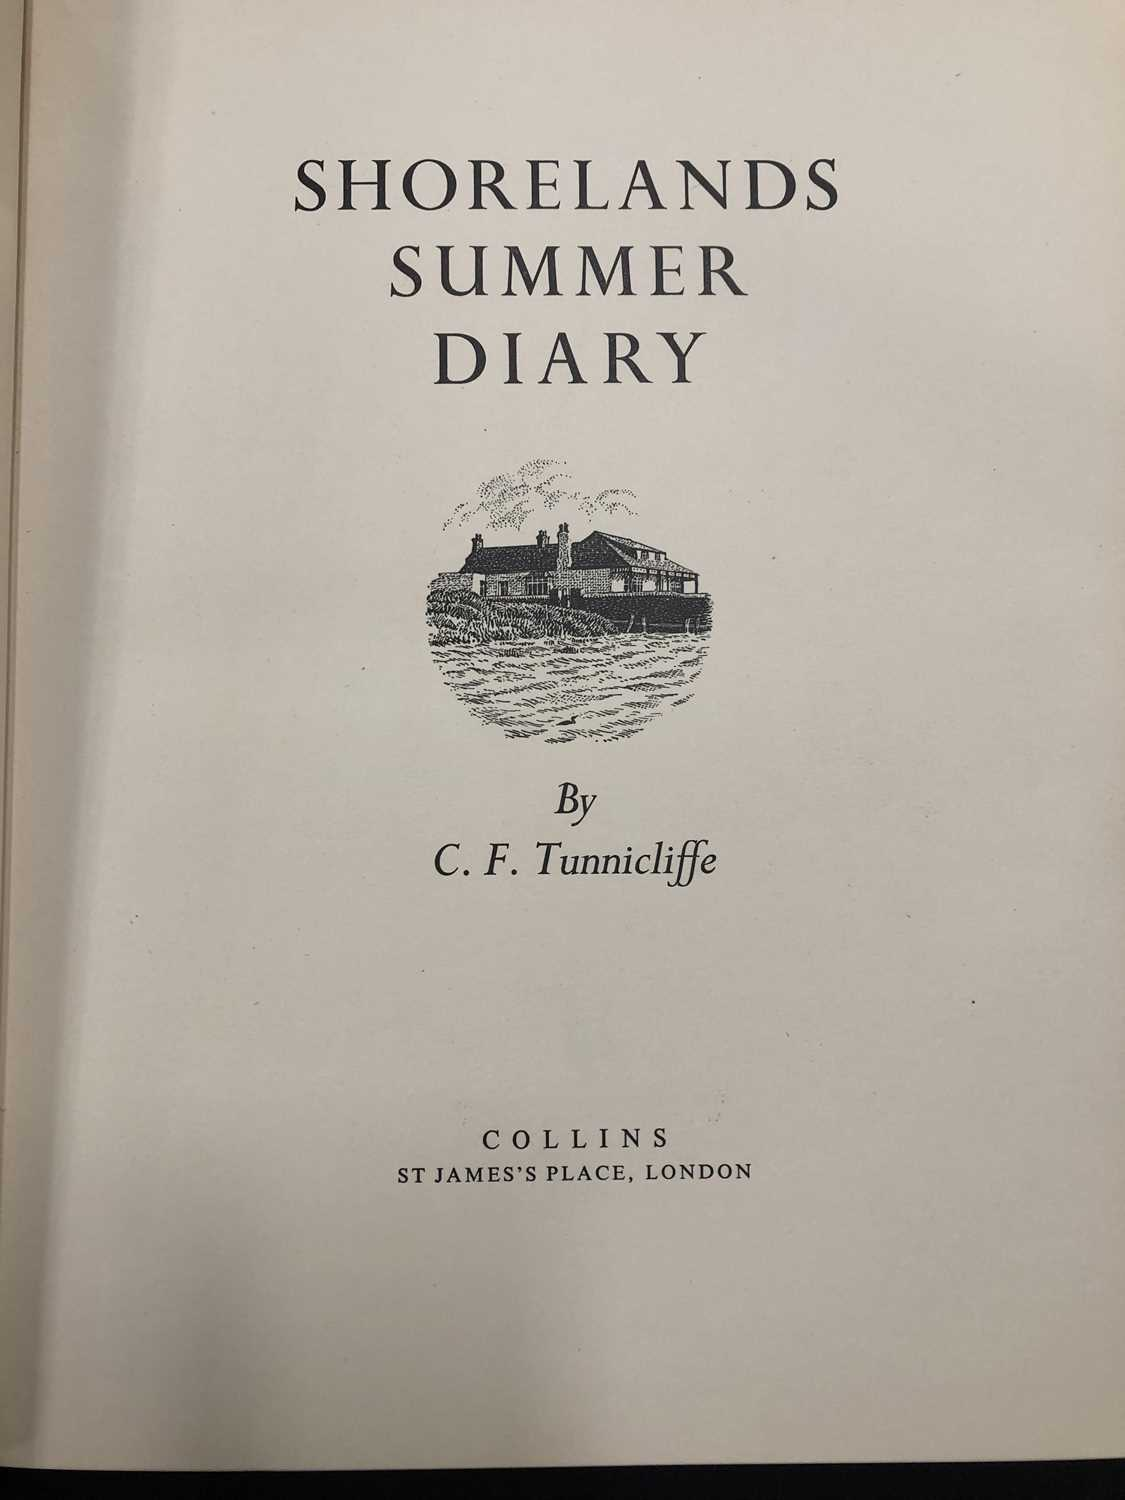 Charles Frederick Tunnicliffe OBE RA (1900-1979) Shorelands Summer Diary - Image 7 of 11